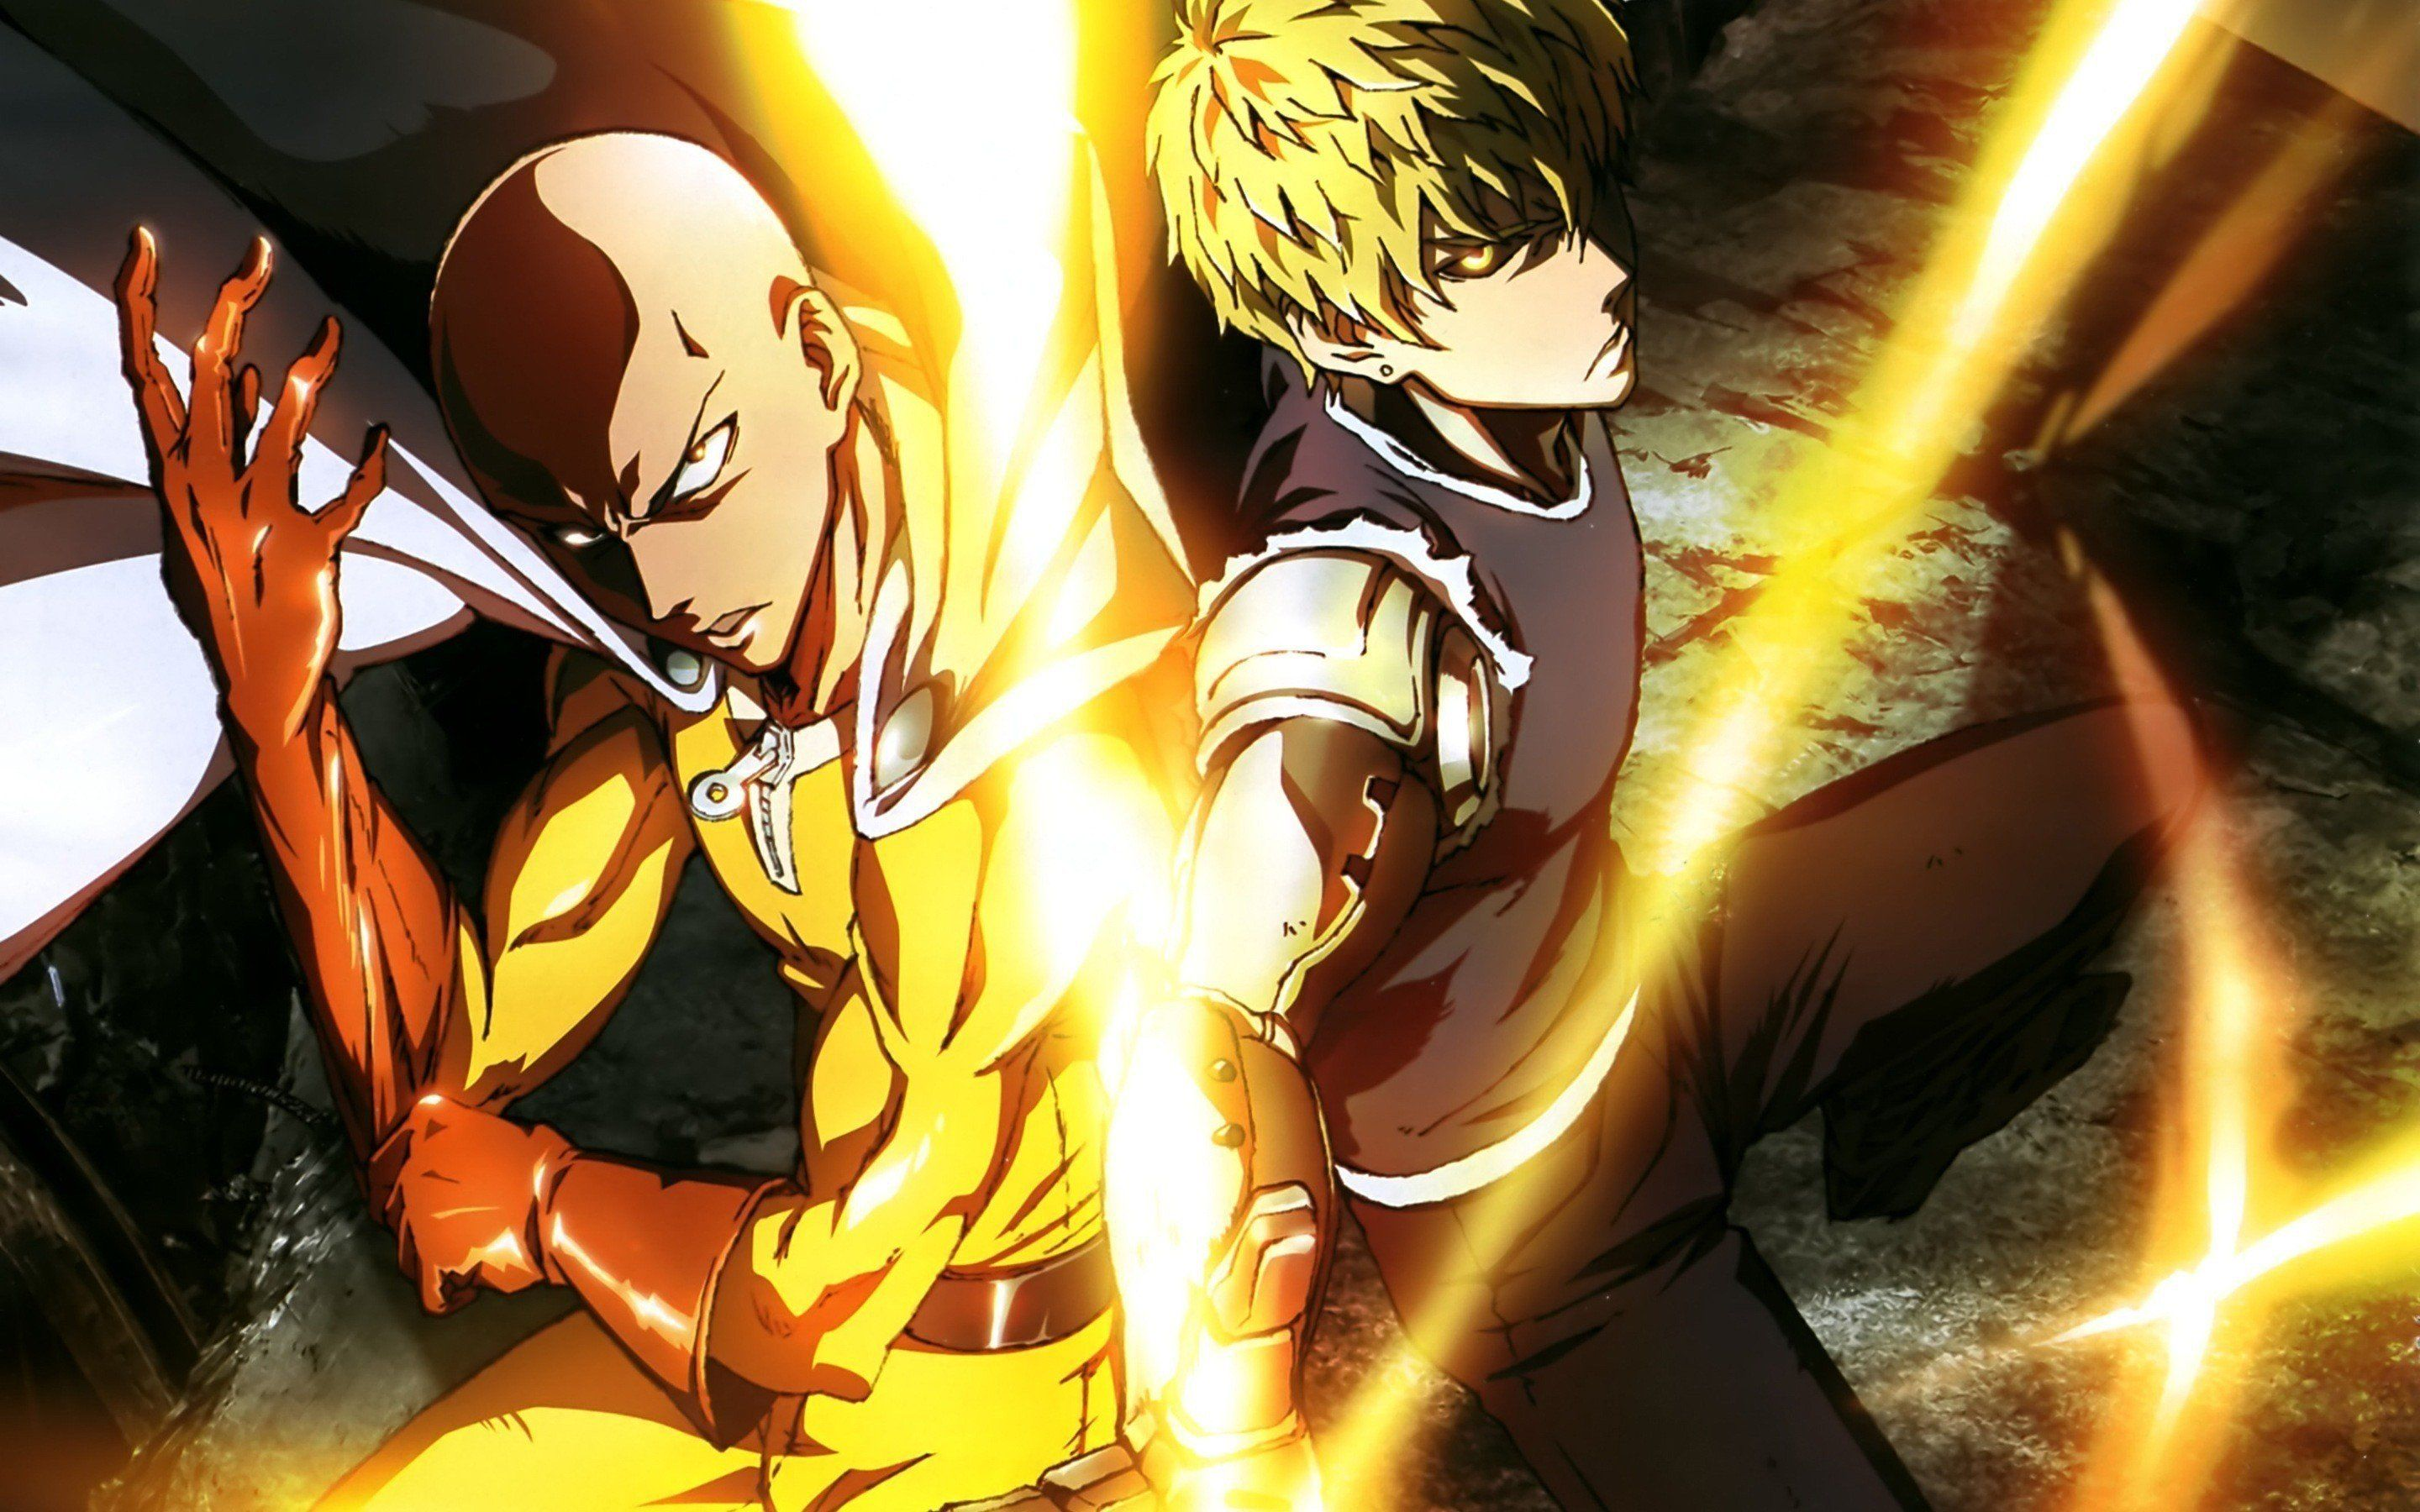 One Punch Man Season 3 Release Date And Total Episodes Count Revealed One Punch Man Episodes One Punch Man Anime One Punch Man Season